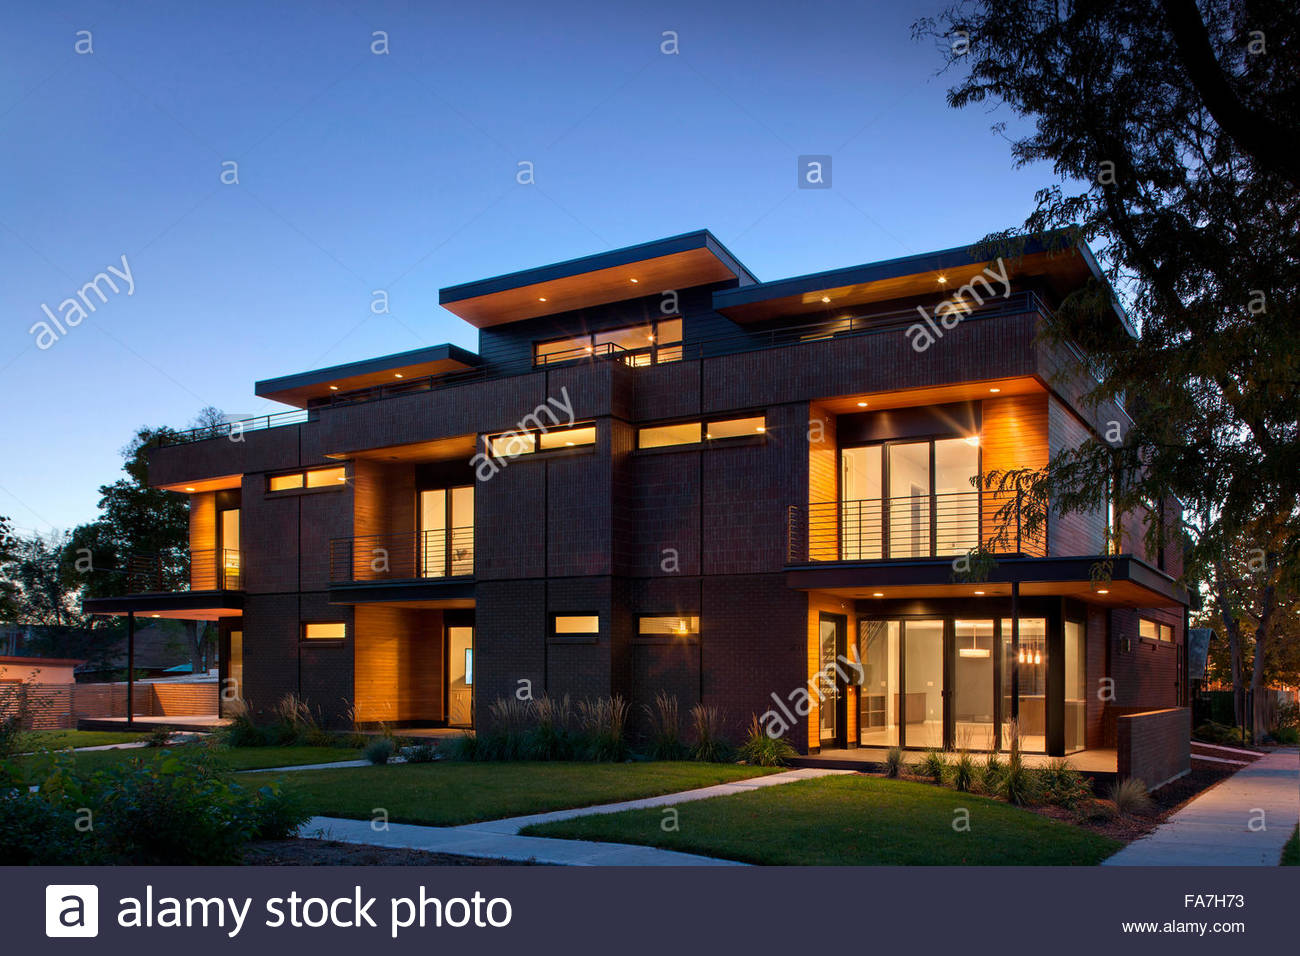 modern red brick apartment building at dusk marion house designed by stock photo 92365591 alamy. Black Bedroom Furniture Sets. Home Design Ideas